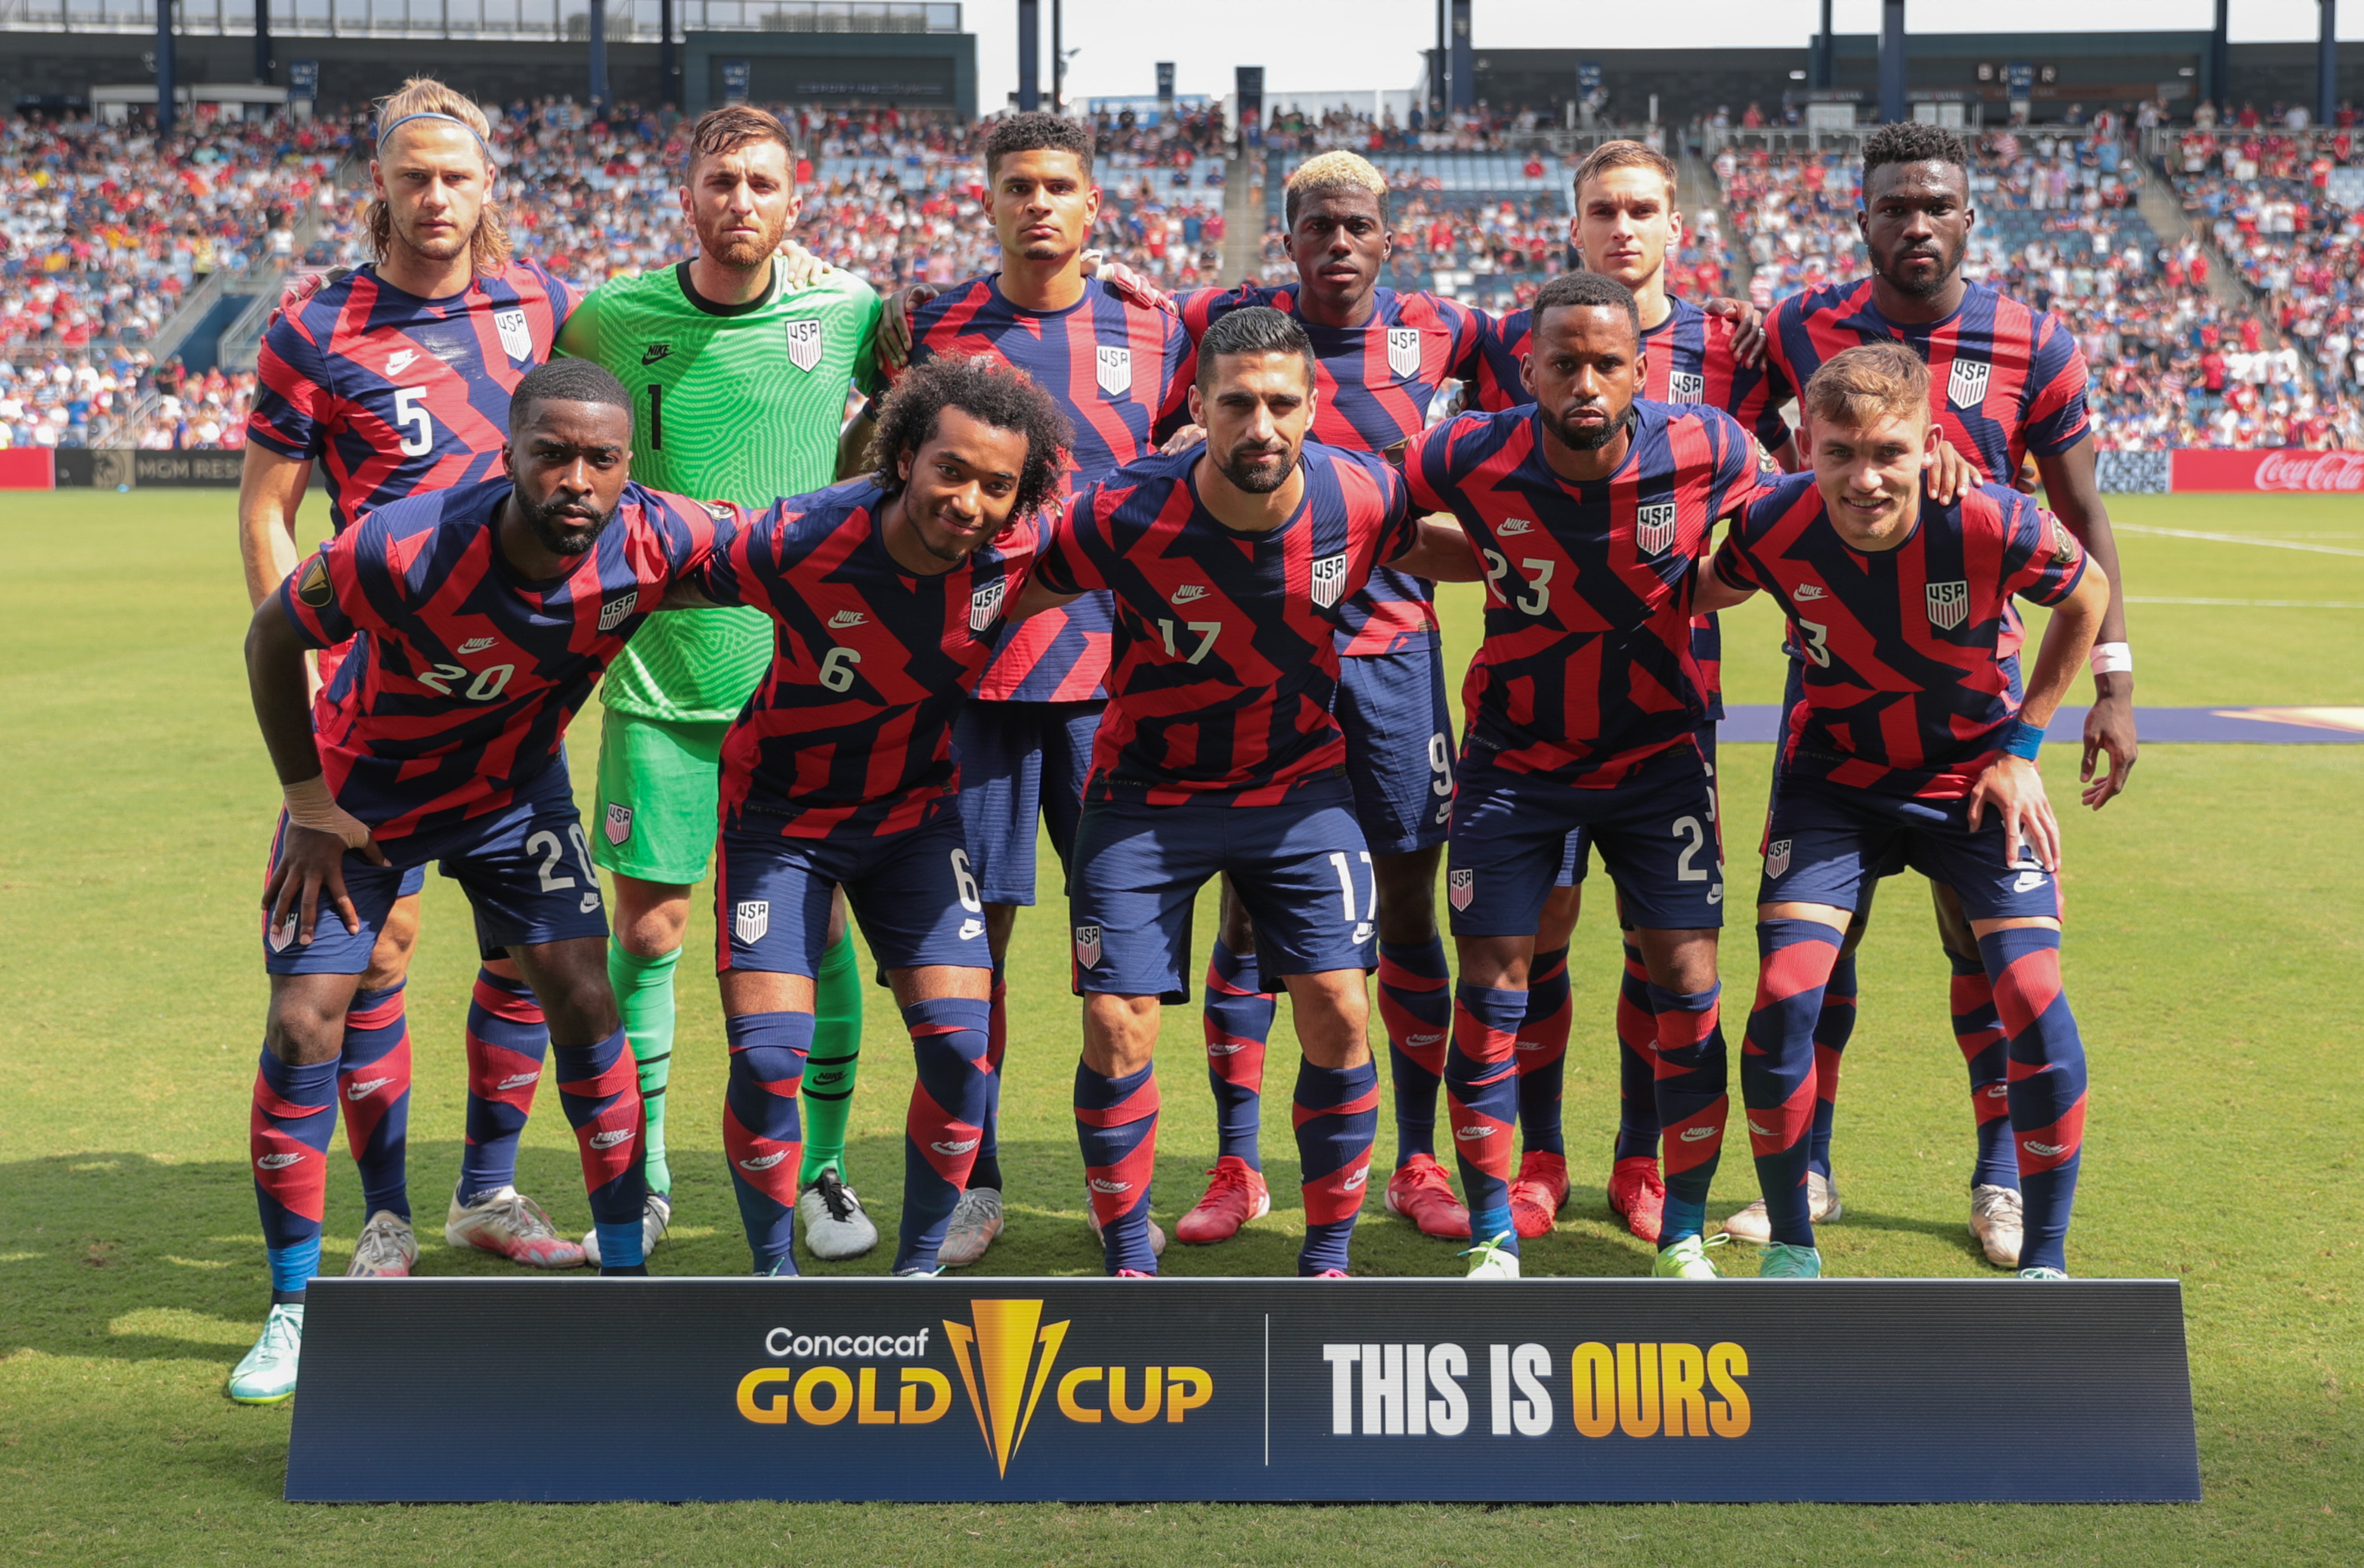 United States v Canada: Group B - 2021 CONCACAF Gold Cup